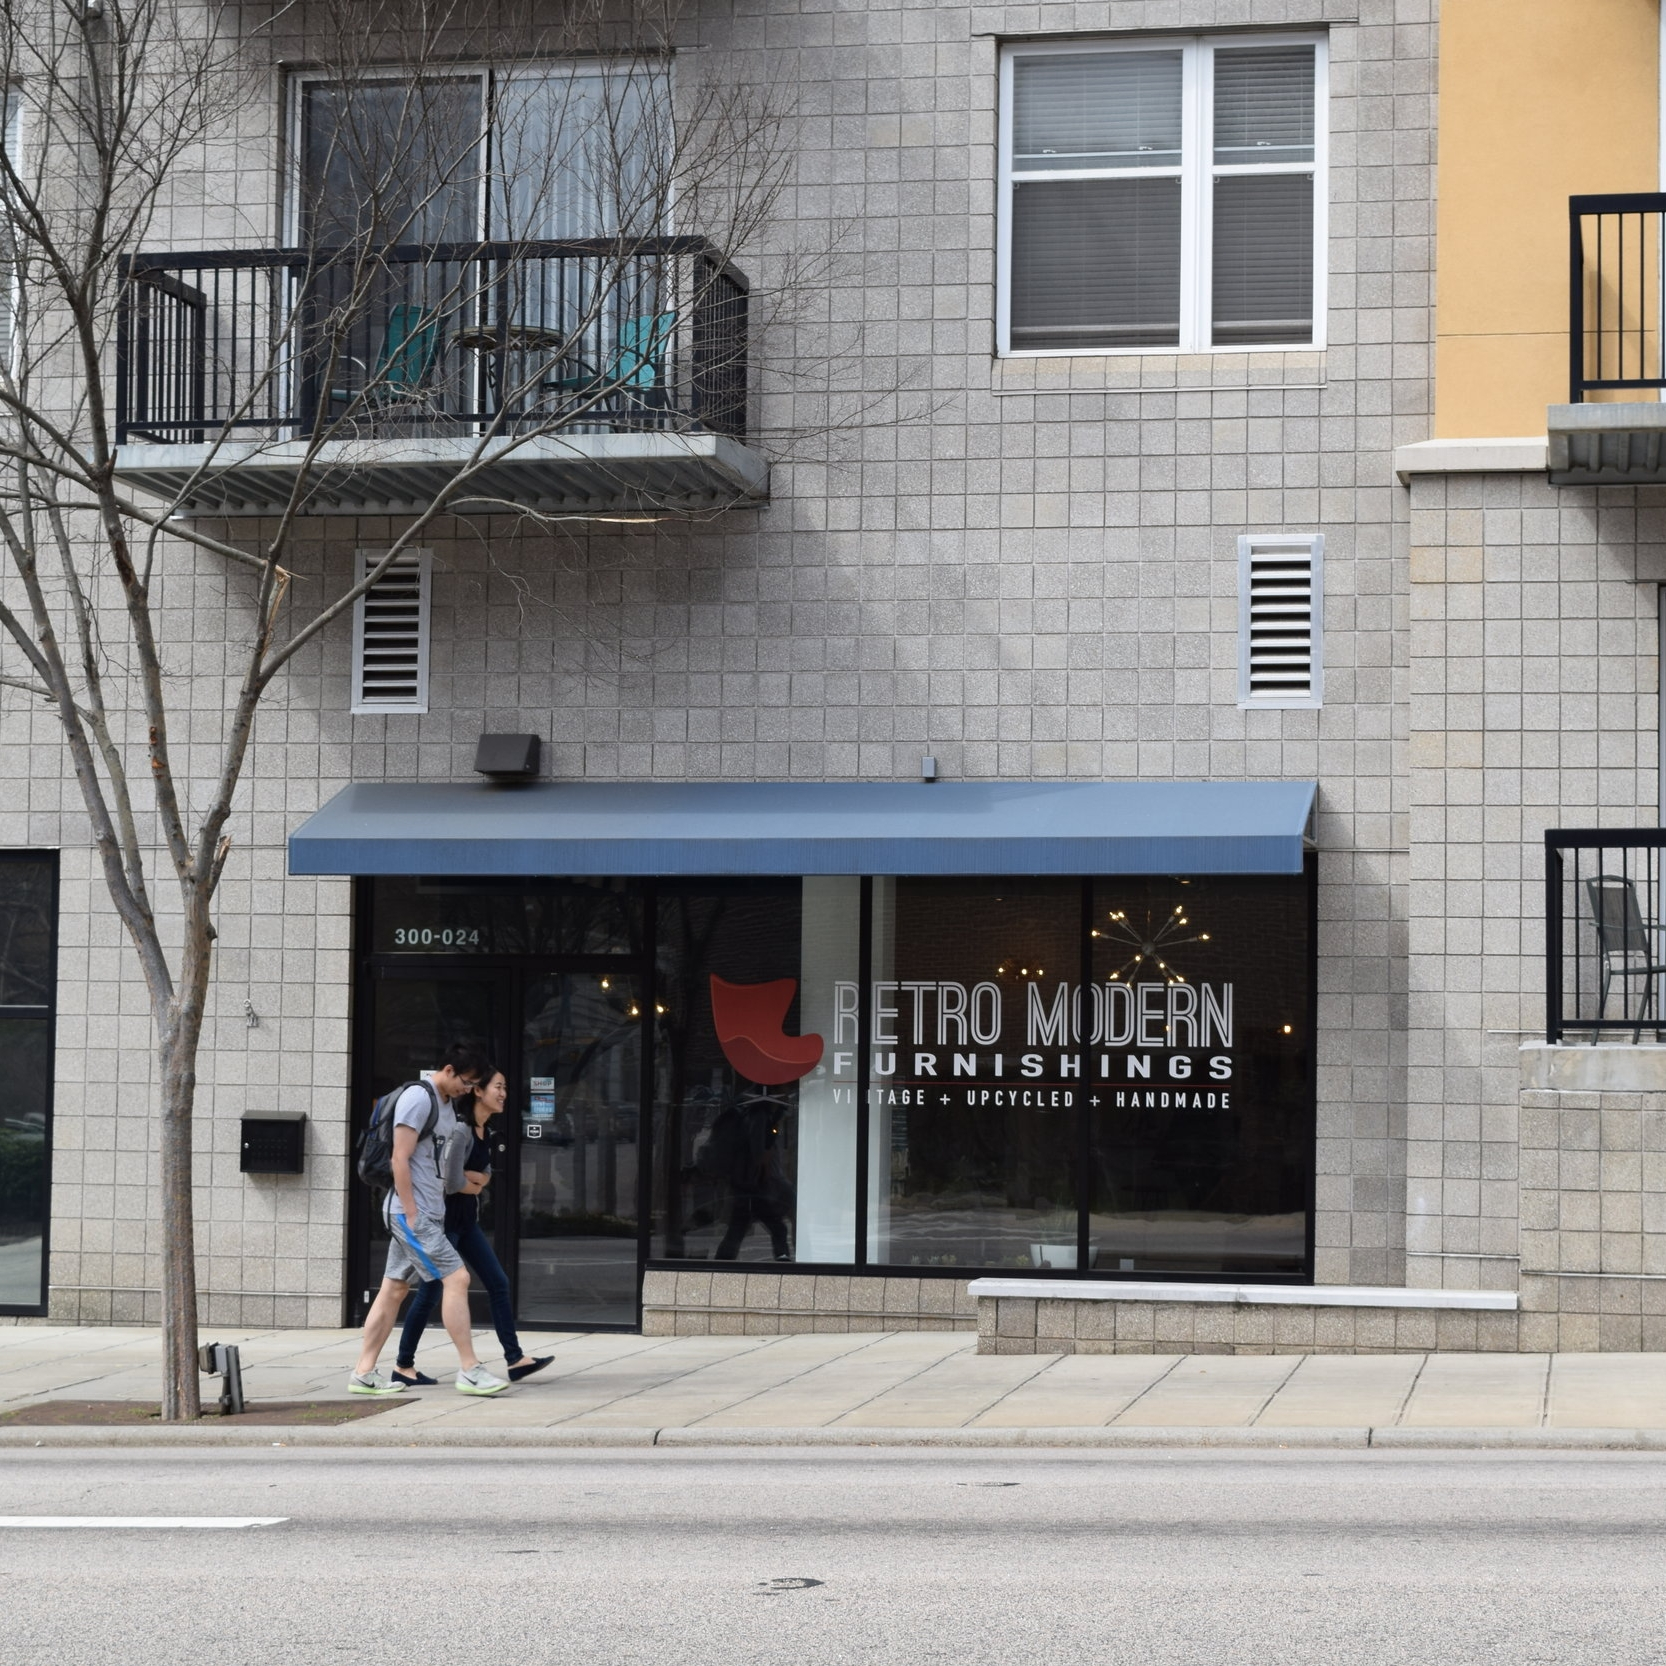 Retro Modern Furnishings - A furniture store specializing in vintage and new, handmade furnishings and home decor.300 W Hargett St #24(storefront on Dawson St.)